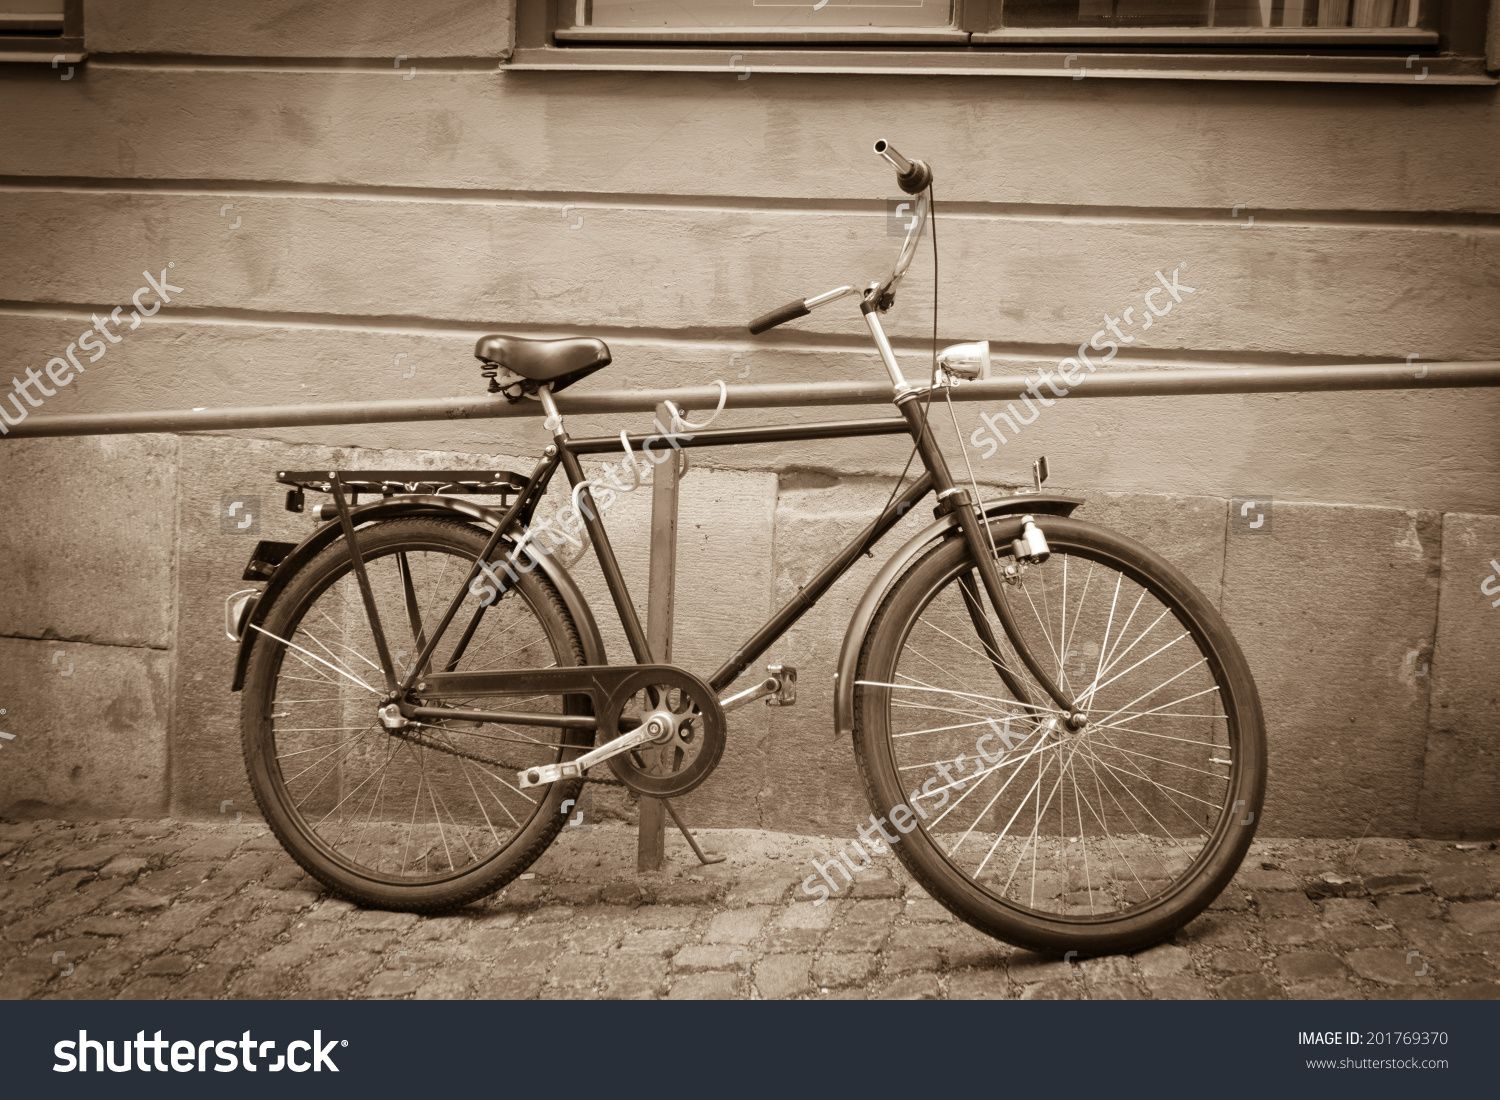 http://www.shutterstock.com/pic-201769370/stock-photo-classic-vintage-retro-city-bicycle-in-stockholm-sweden.html?src=z1Js5wc…